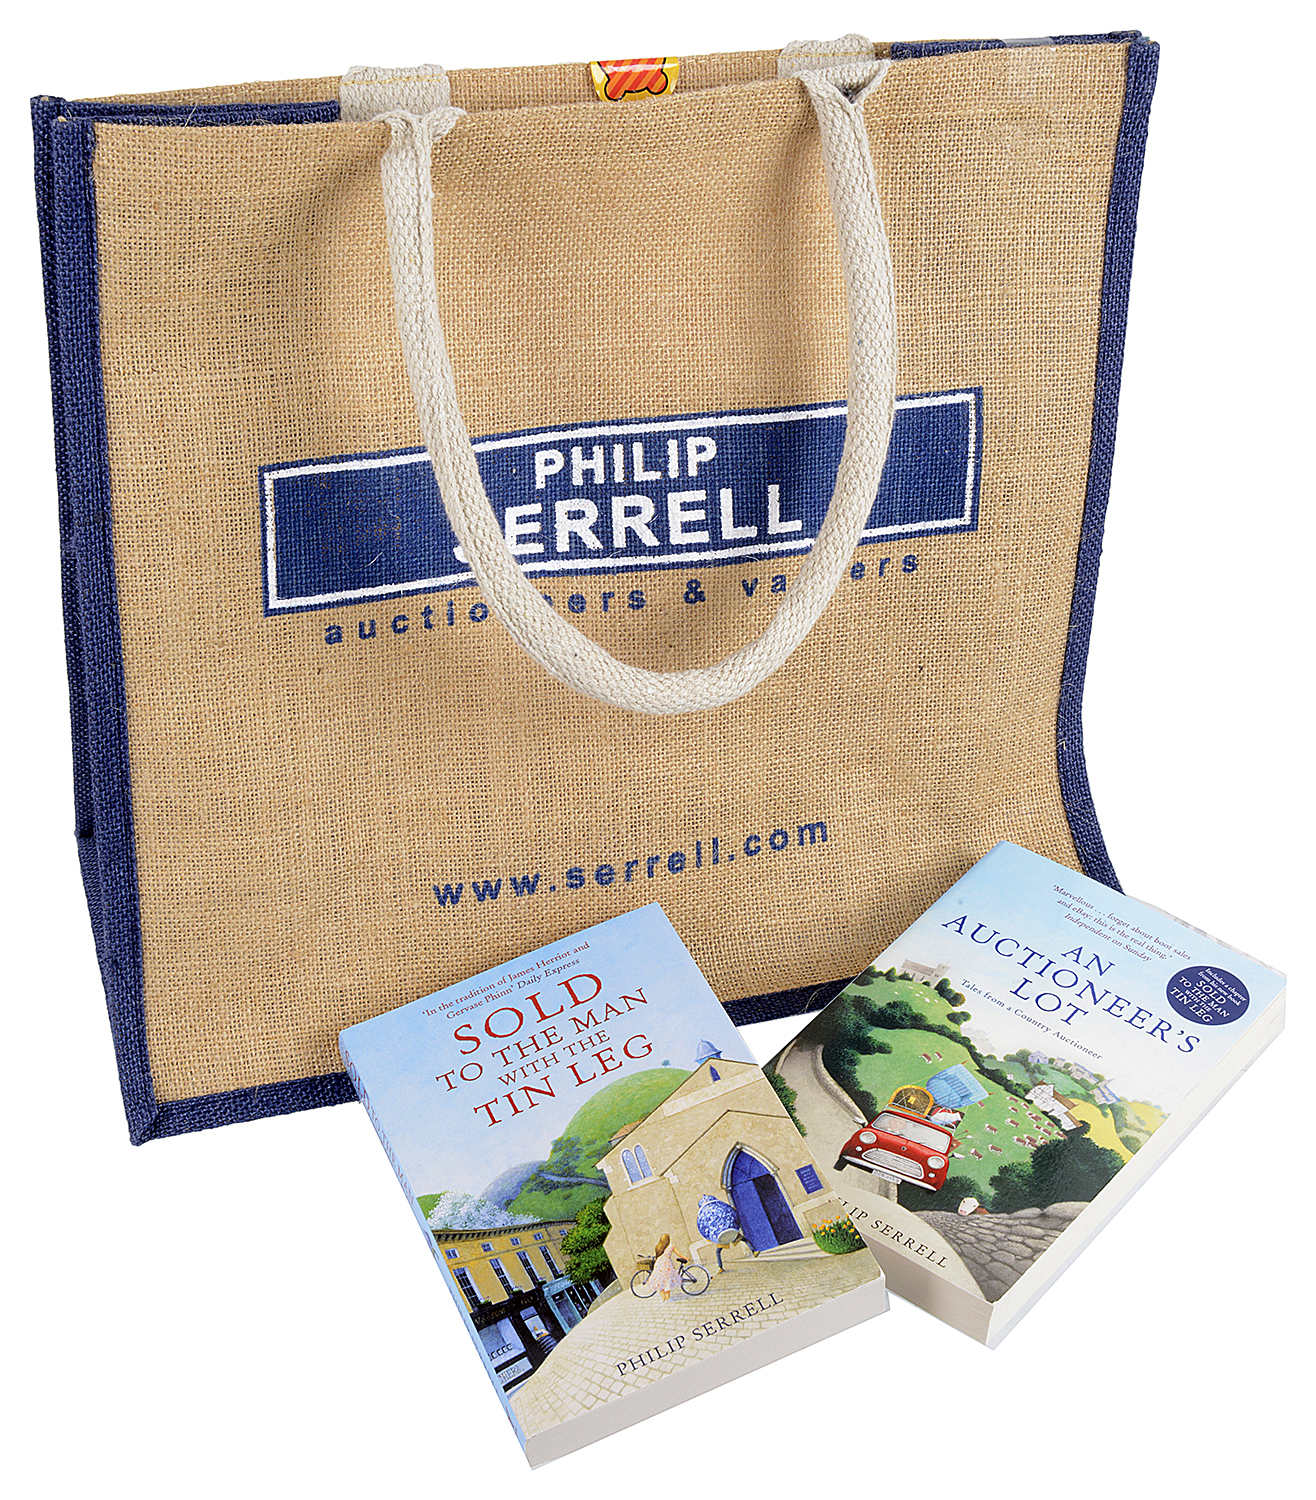 Lot 60 - Philip Serrell Signed Books And Goodie Bag